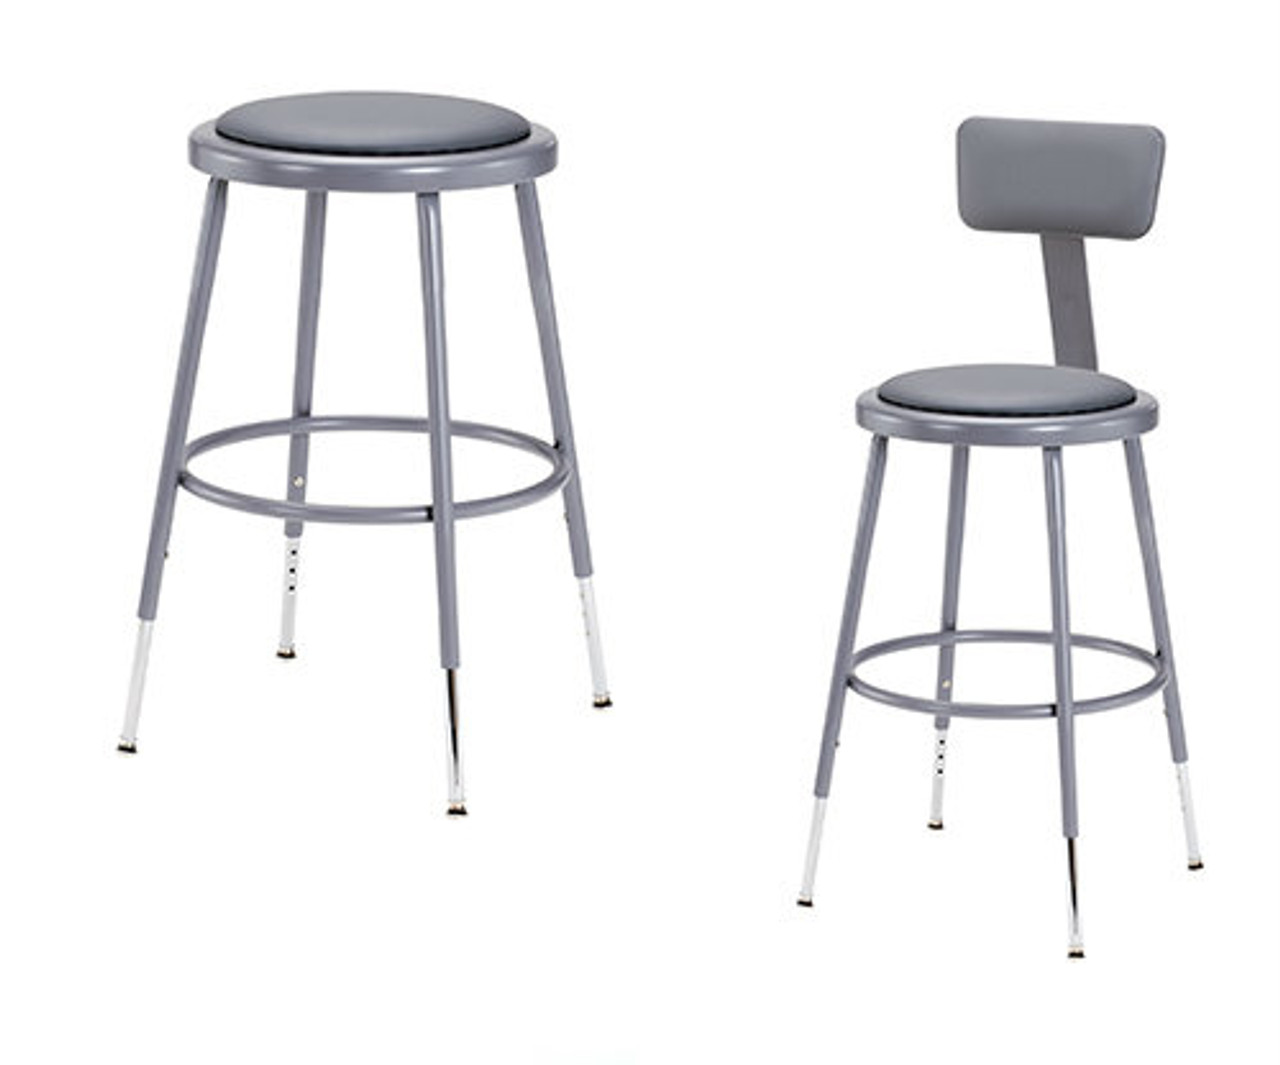 Gray Adjustable Round Science Lab Stool With Padded Seat And Optional Backrest By National Public Seating Foldingchairsandtables Com